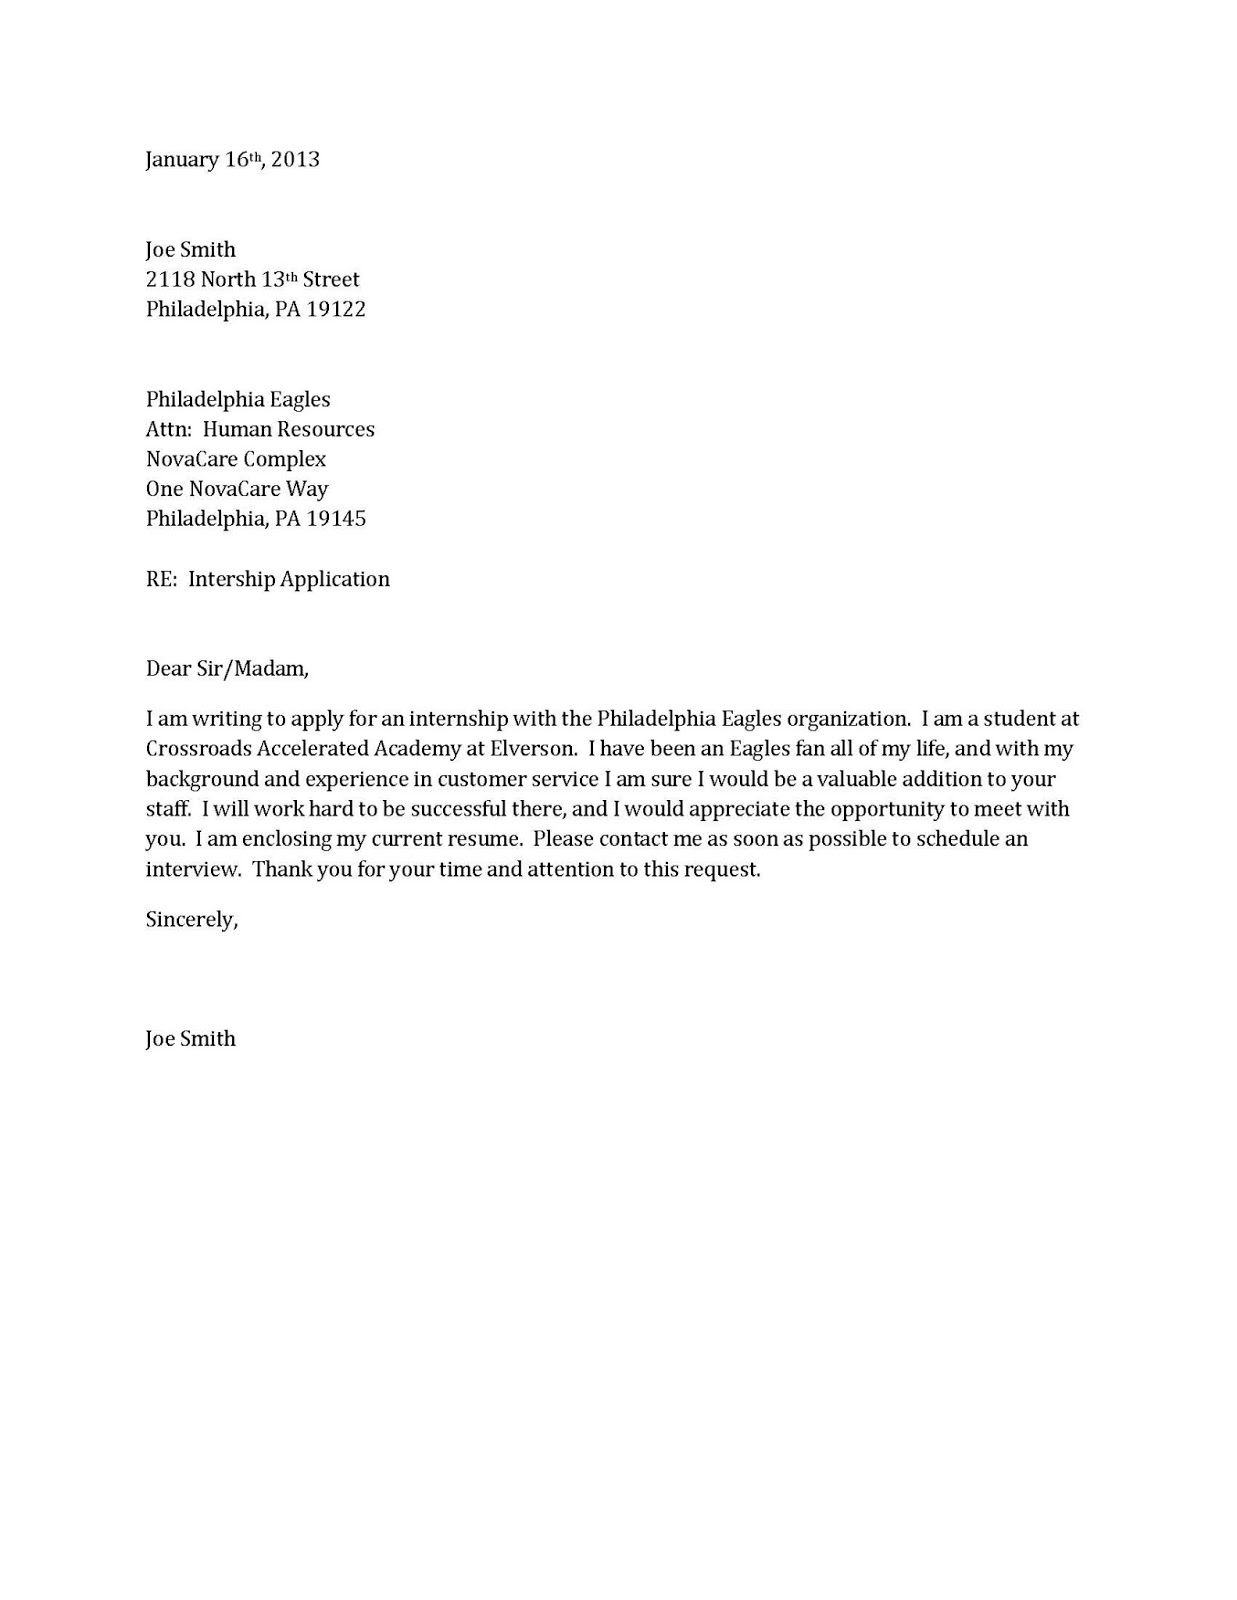 simple cover letter easy template pixsimple cover letter - Cover Letters Sample